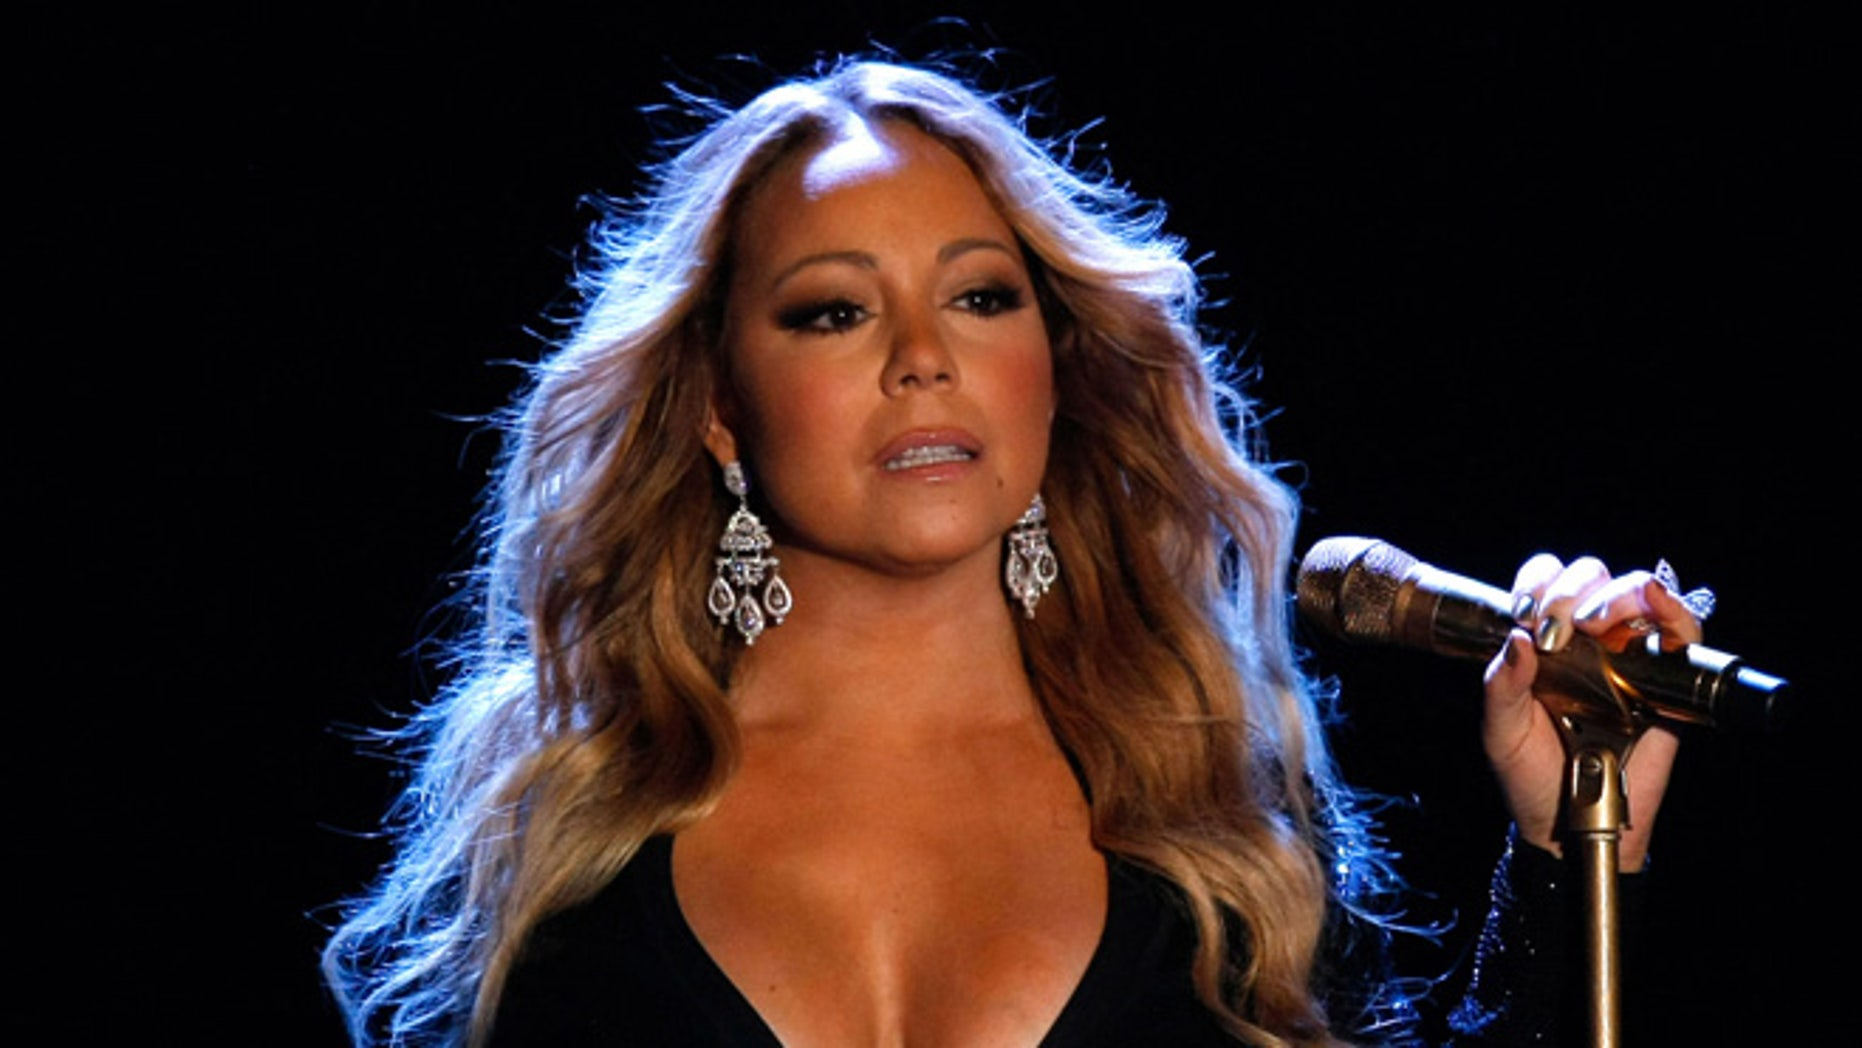 Mariah Carey accused of lip-syncing during American Music Awards performance